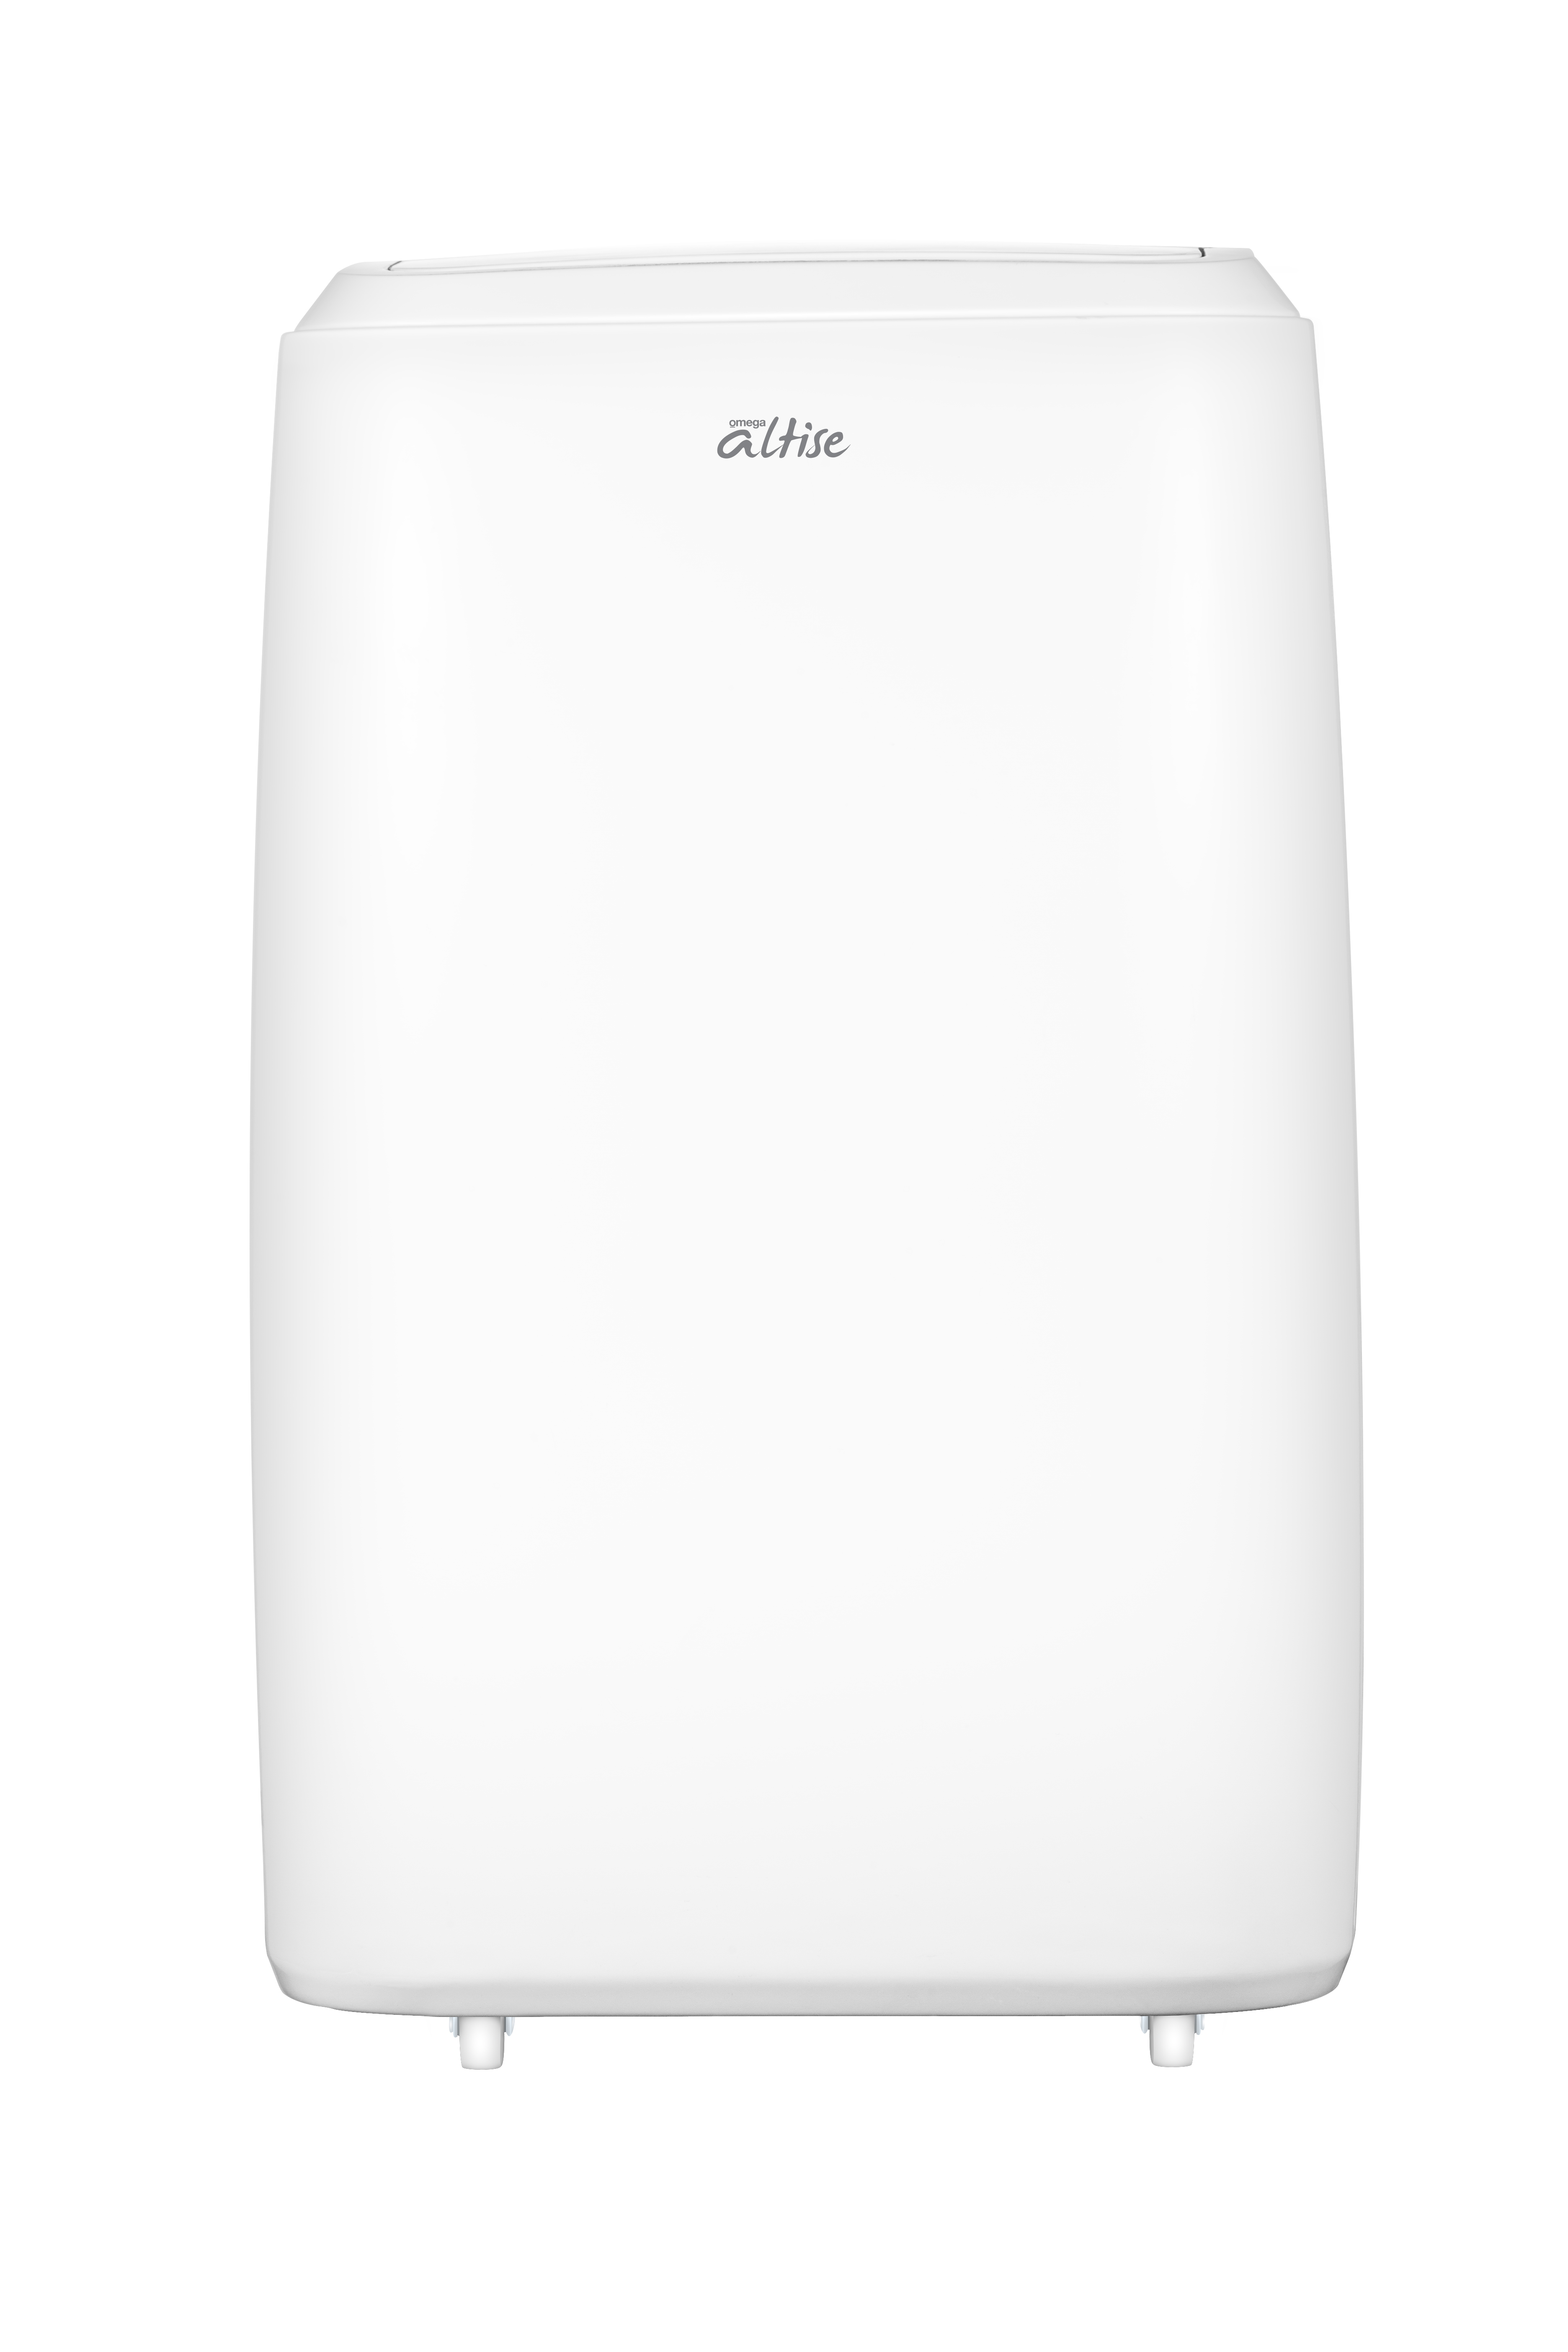 Omega Altise product 5.2kW Slimline Portable Air-Conditioner OAPC187